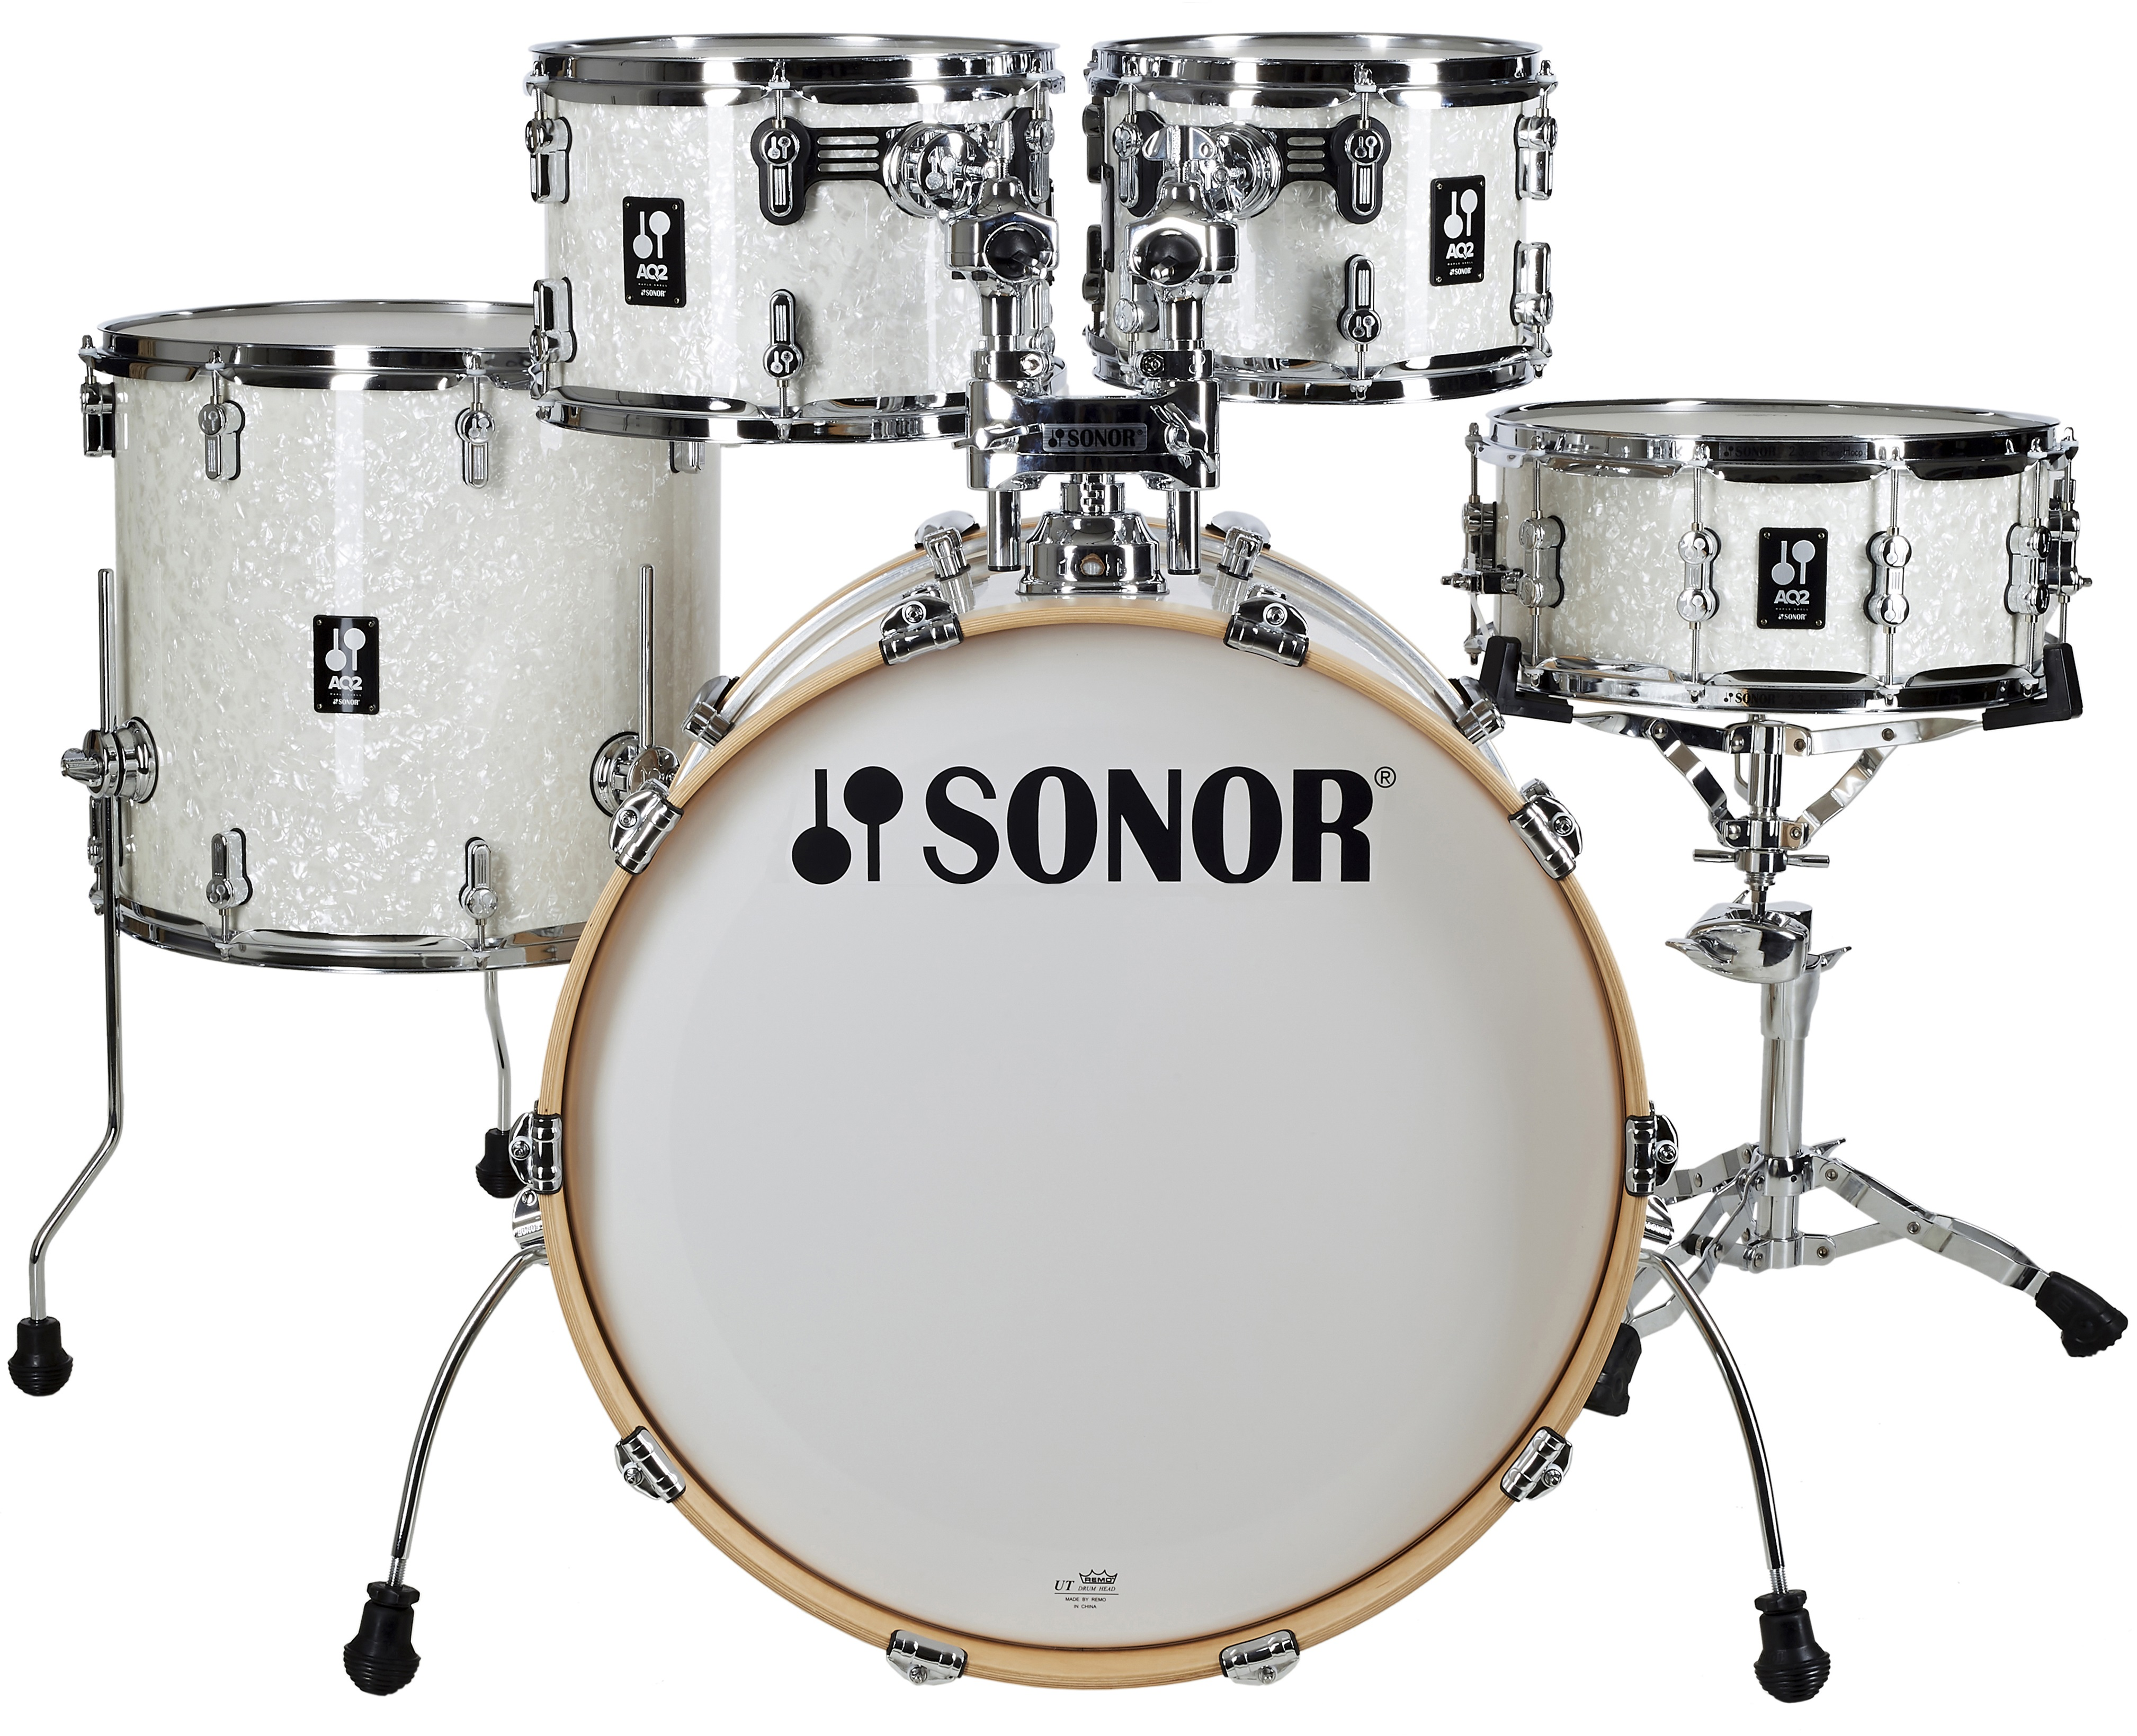 Sonor AQ 2 Studio Set White Pearl